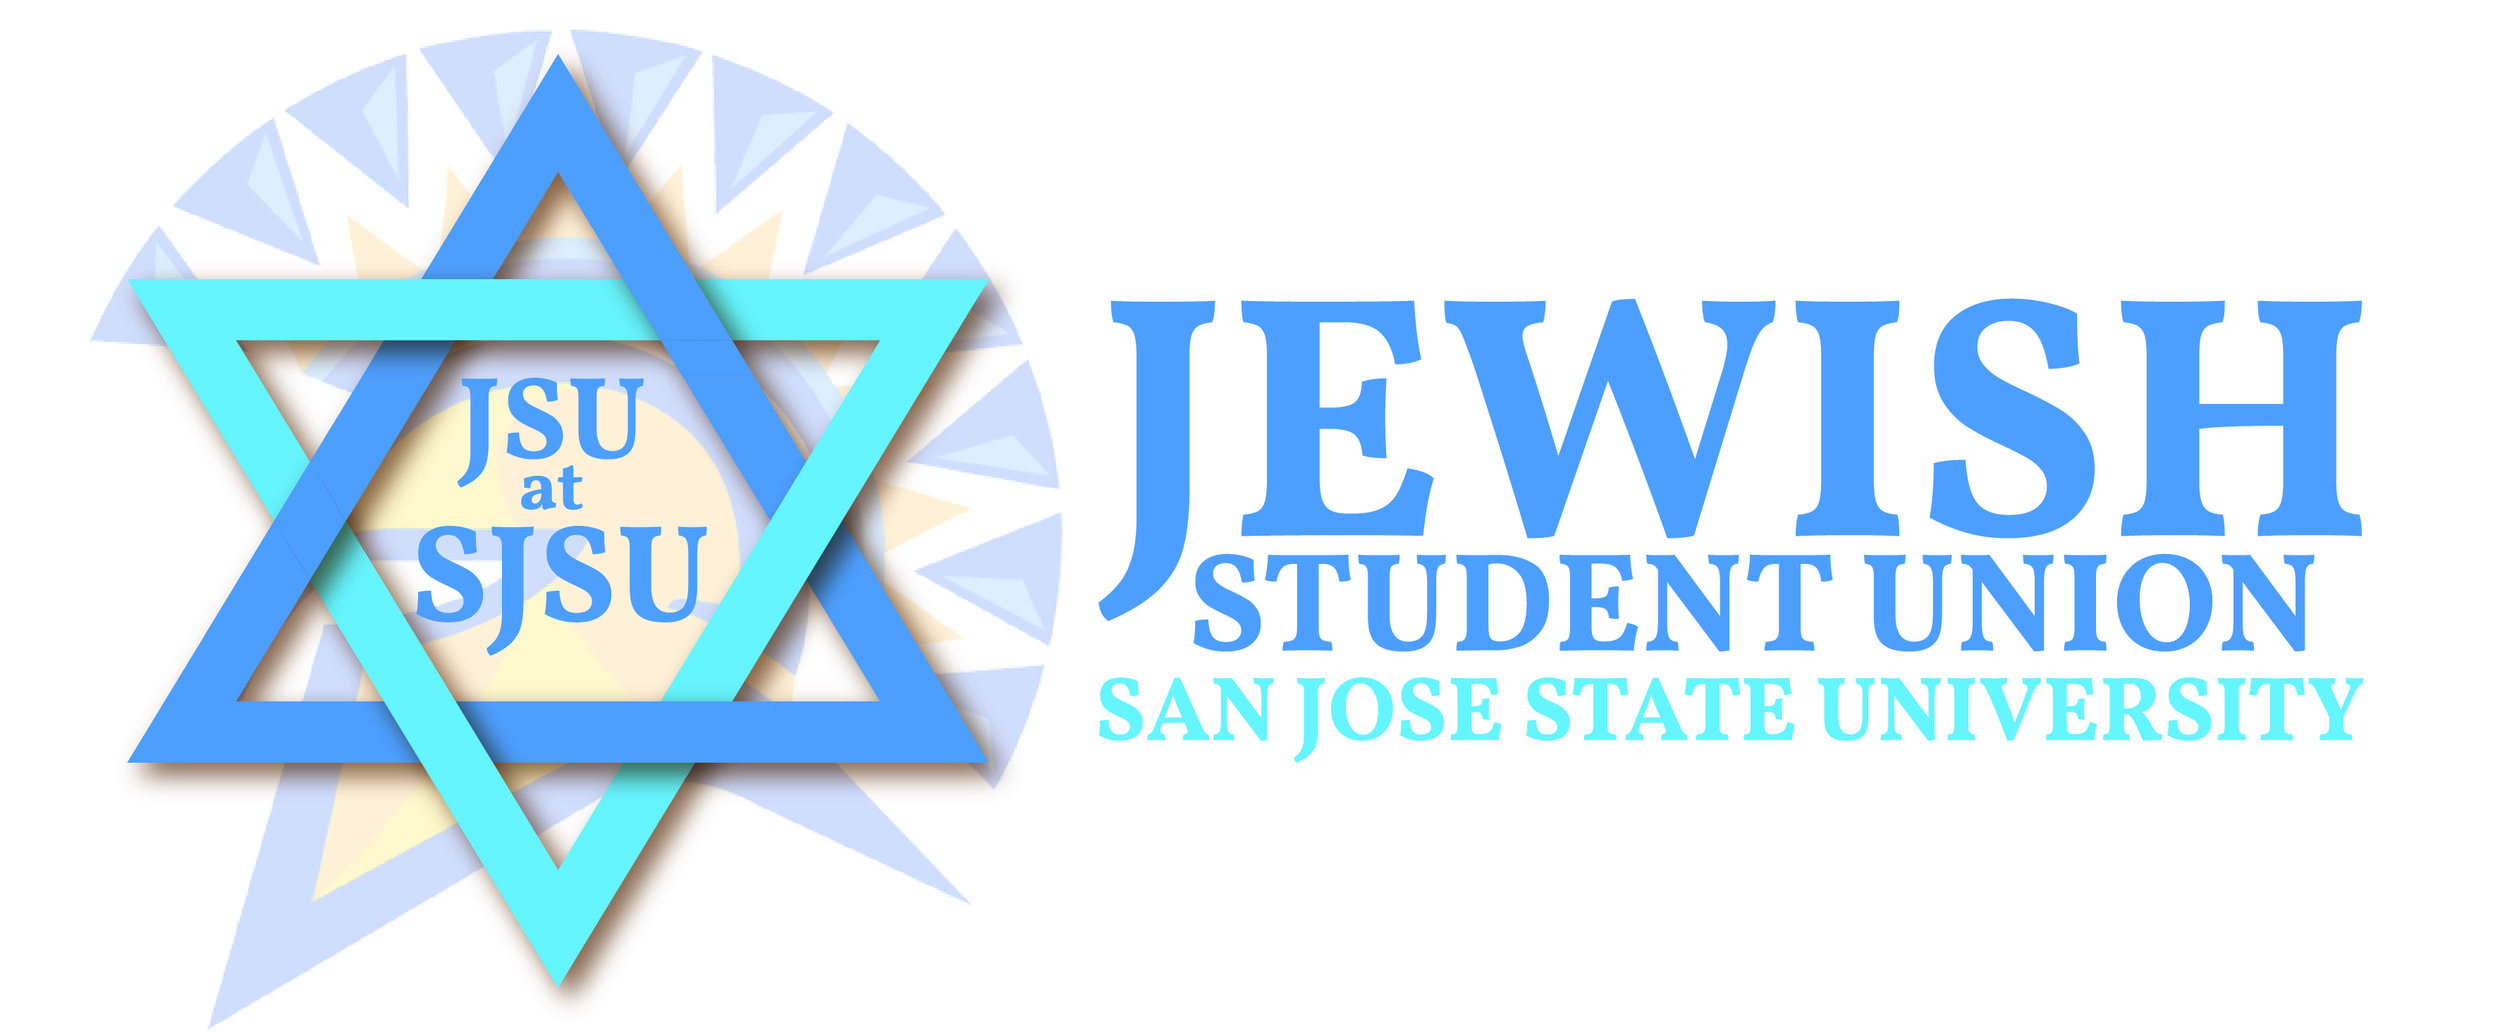 JSU at SJSU, 2018 - Logo, San Jose State University JSU